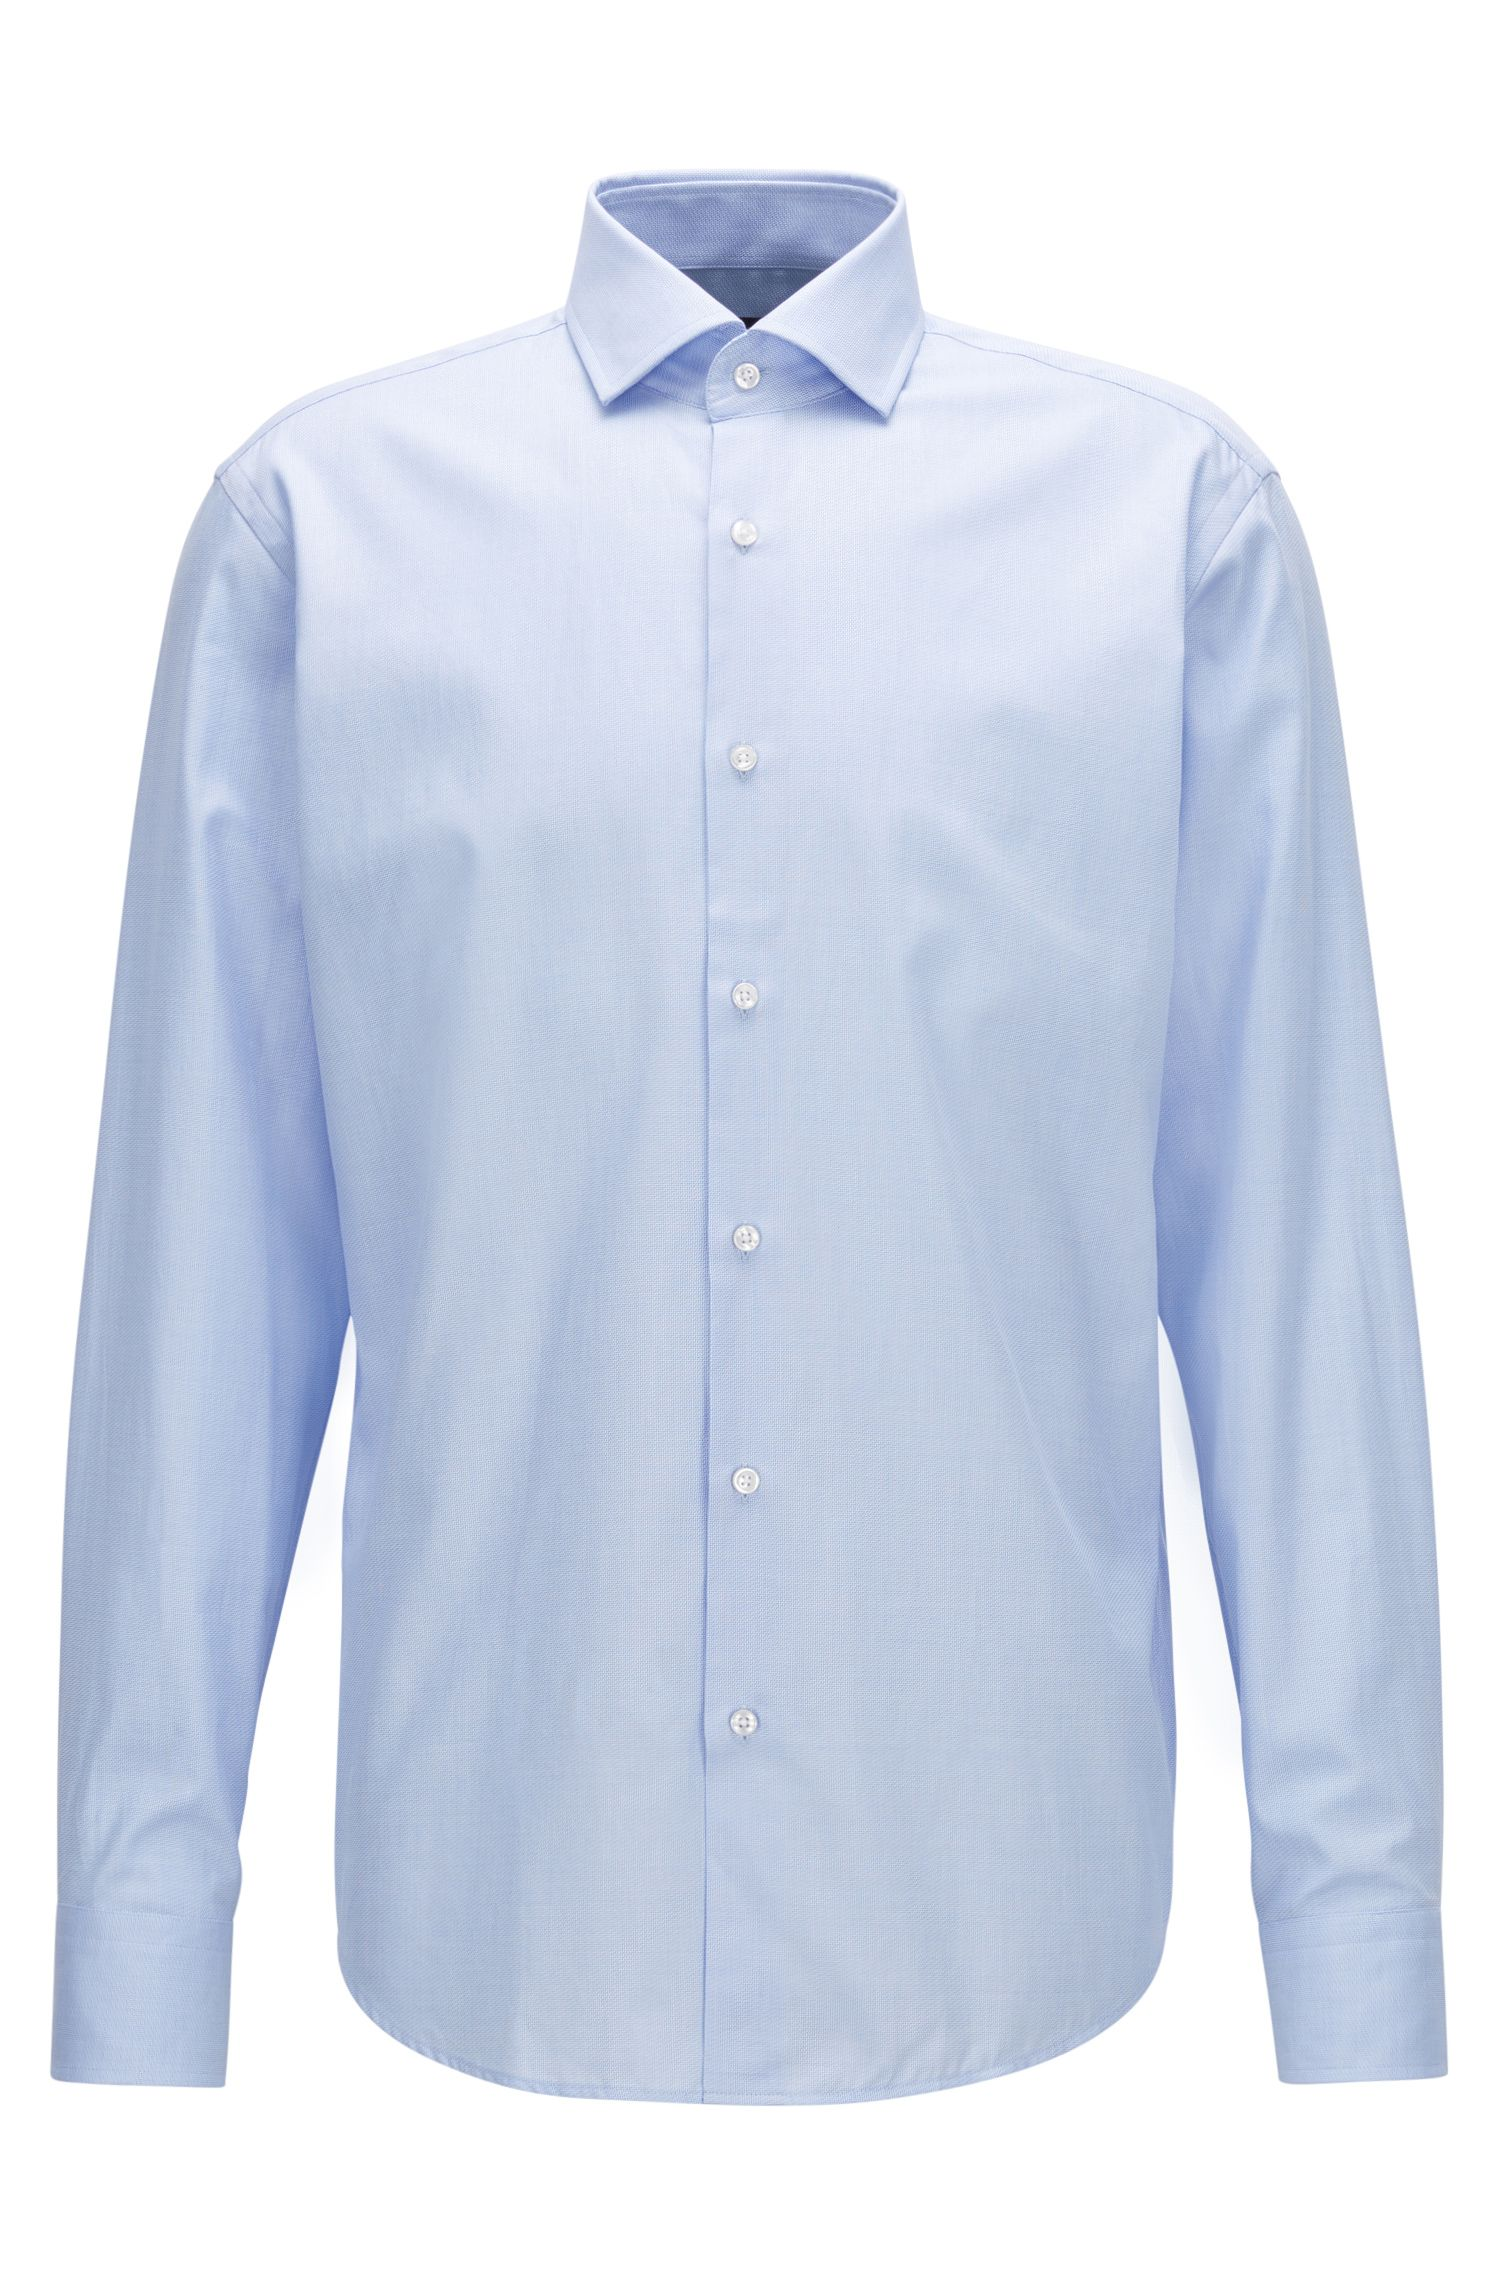 Regular-fit shirt in micro-structure cotton twill